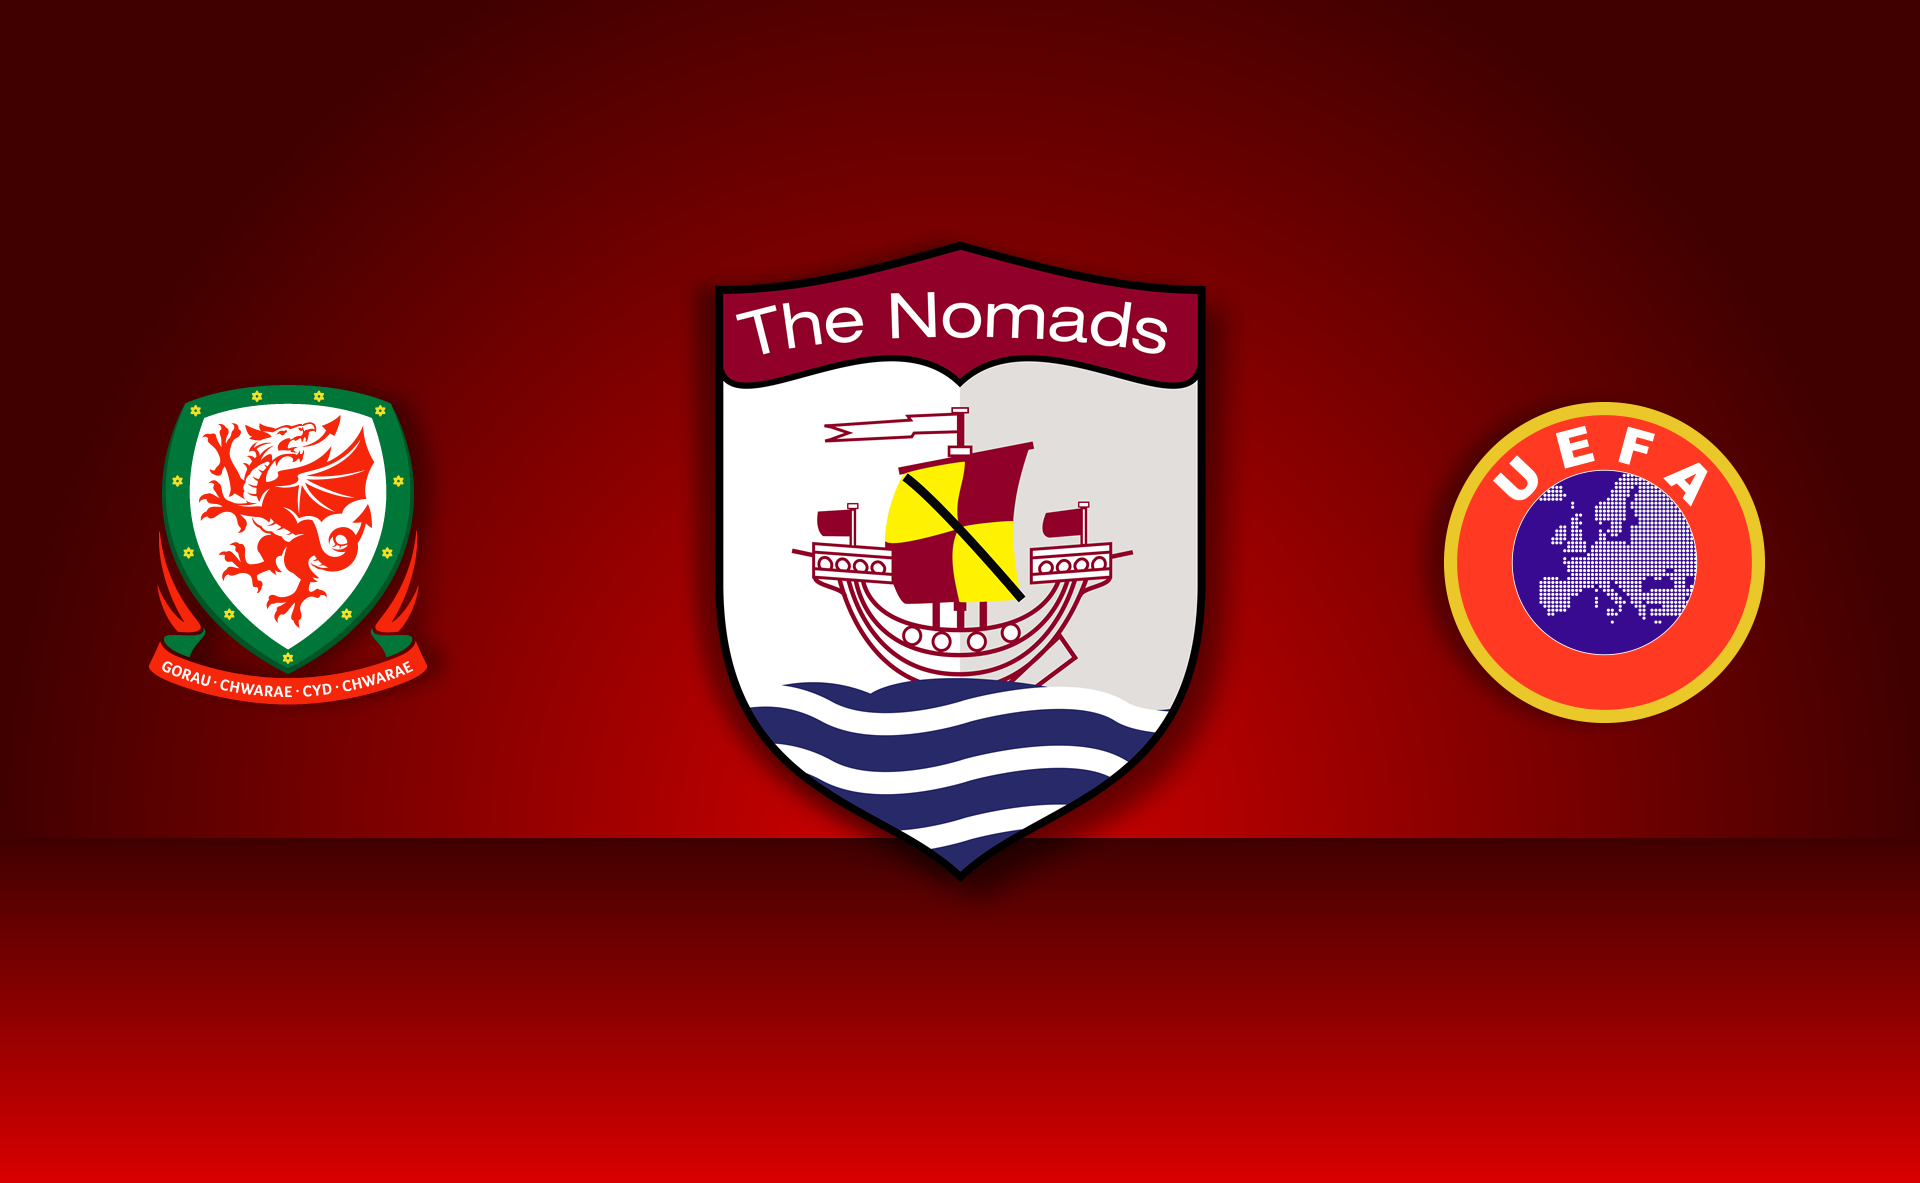 Nomads awarded double licence success